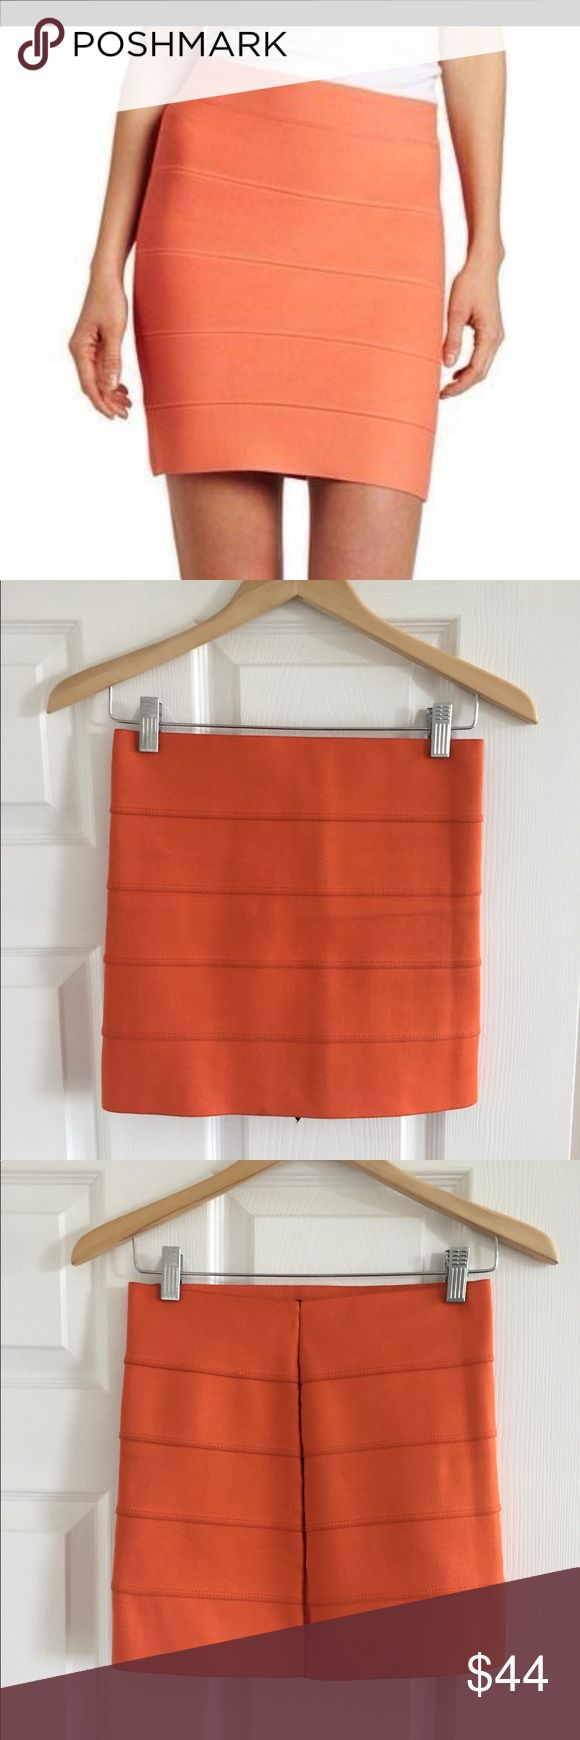 """Pleasure Doing Business 5 Band Orange Miniskirt This banded elastic skirt features seam details. Body hugging and sexy fit.   * 14"""" long. * Fabrication: Elastic. * 90% polyester/10% rubber. * Hand wash. * Made in the U.S.A. Pleasure Doing Business Skirts Mini"""